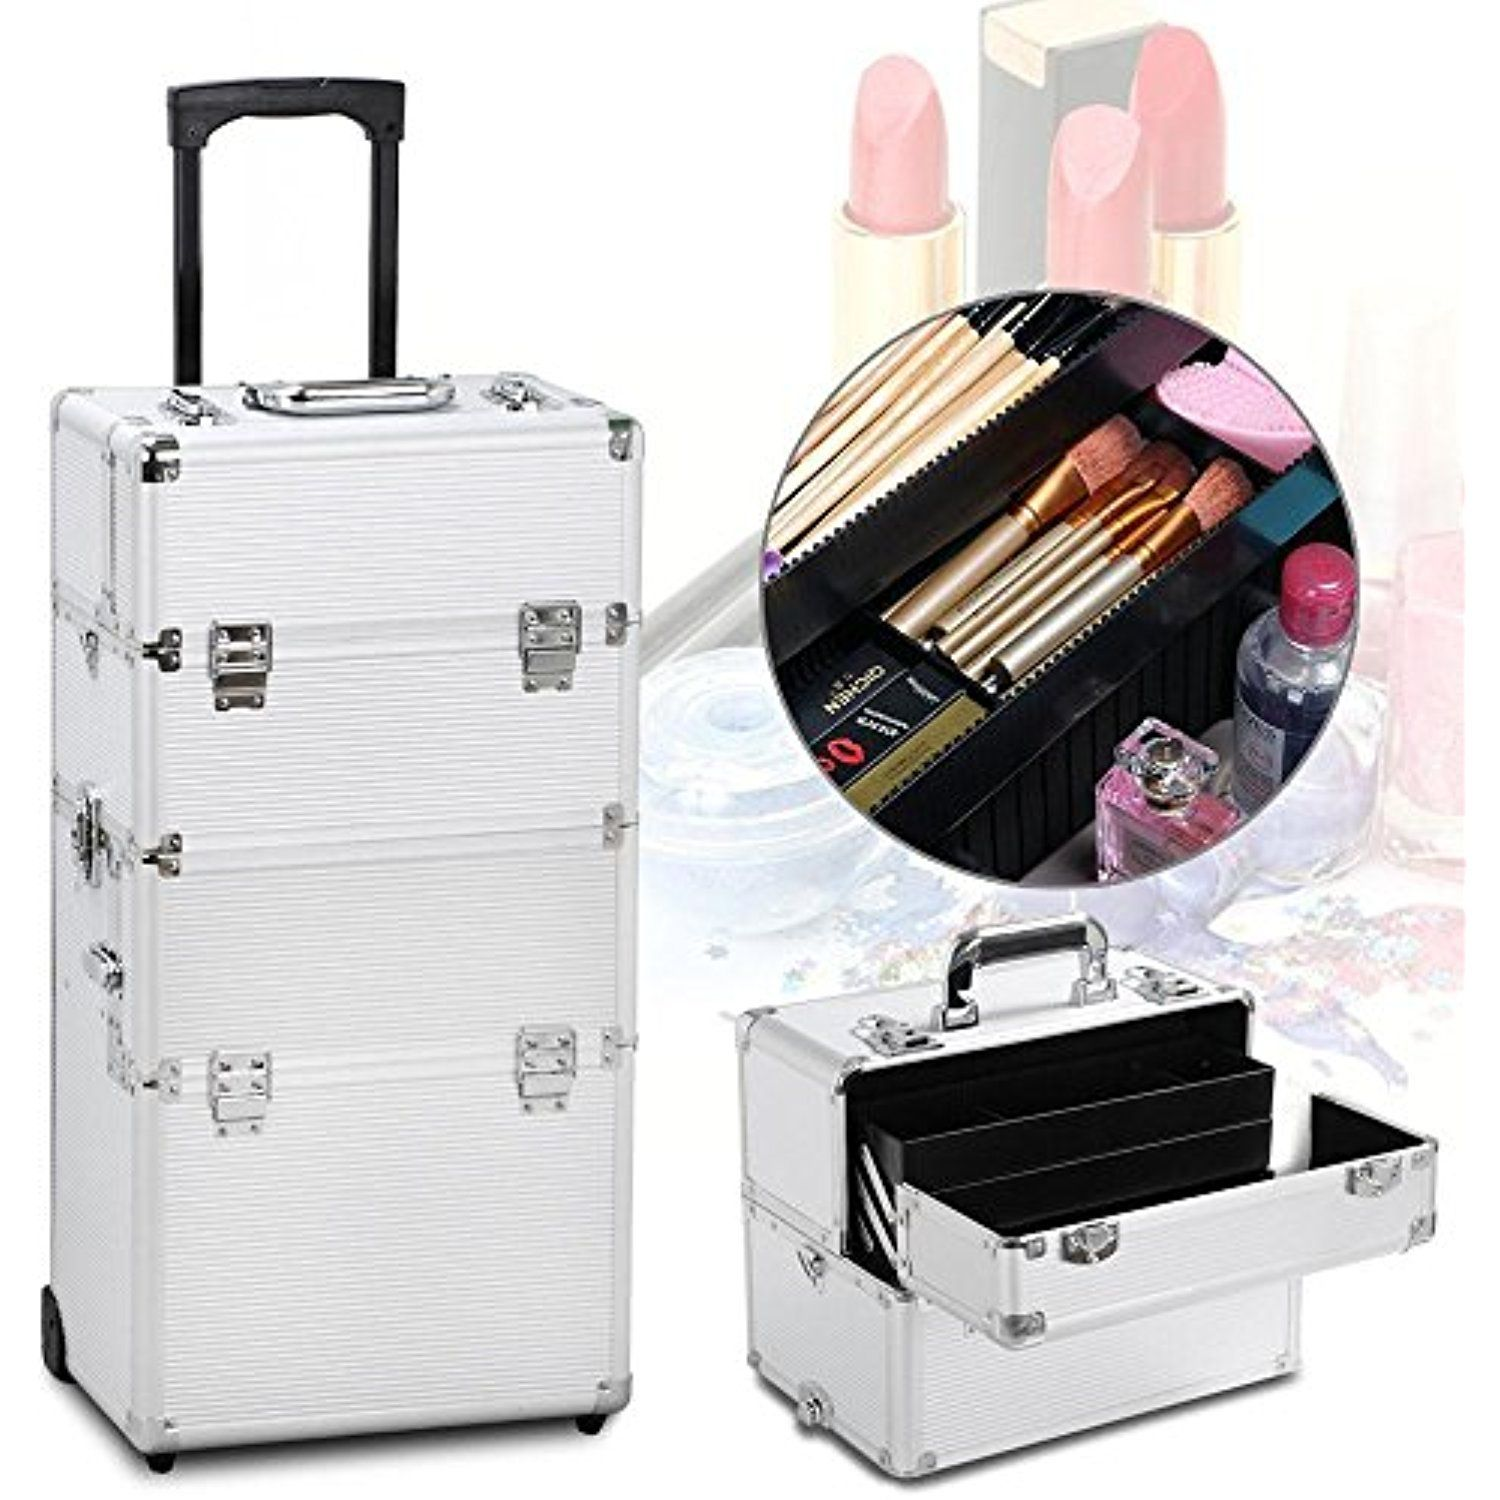 Gotobuy 3 in 1 Train Makeup Cosmetic Cases Nail Technician Supplies ...